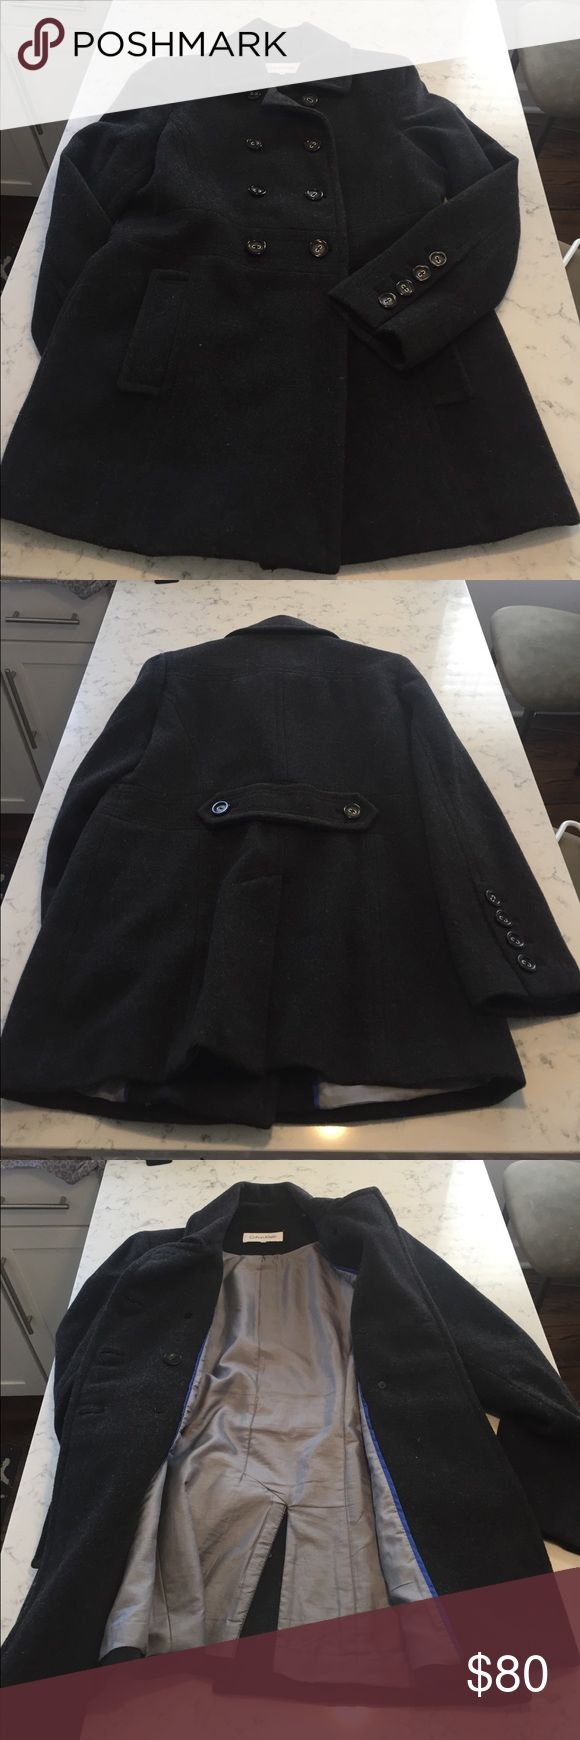 Calvin Klein Dark Gray Women's Peacoat W10 Classy Dark Gray Calvin Klein Peacoat. Warm and Fits Great! Perfect for wearing in the city or to holiday parties! Fall and Winter Use. Worn Twice. Size Women's 10. Calvin Klein Jackets & Coats Pea Coats